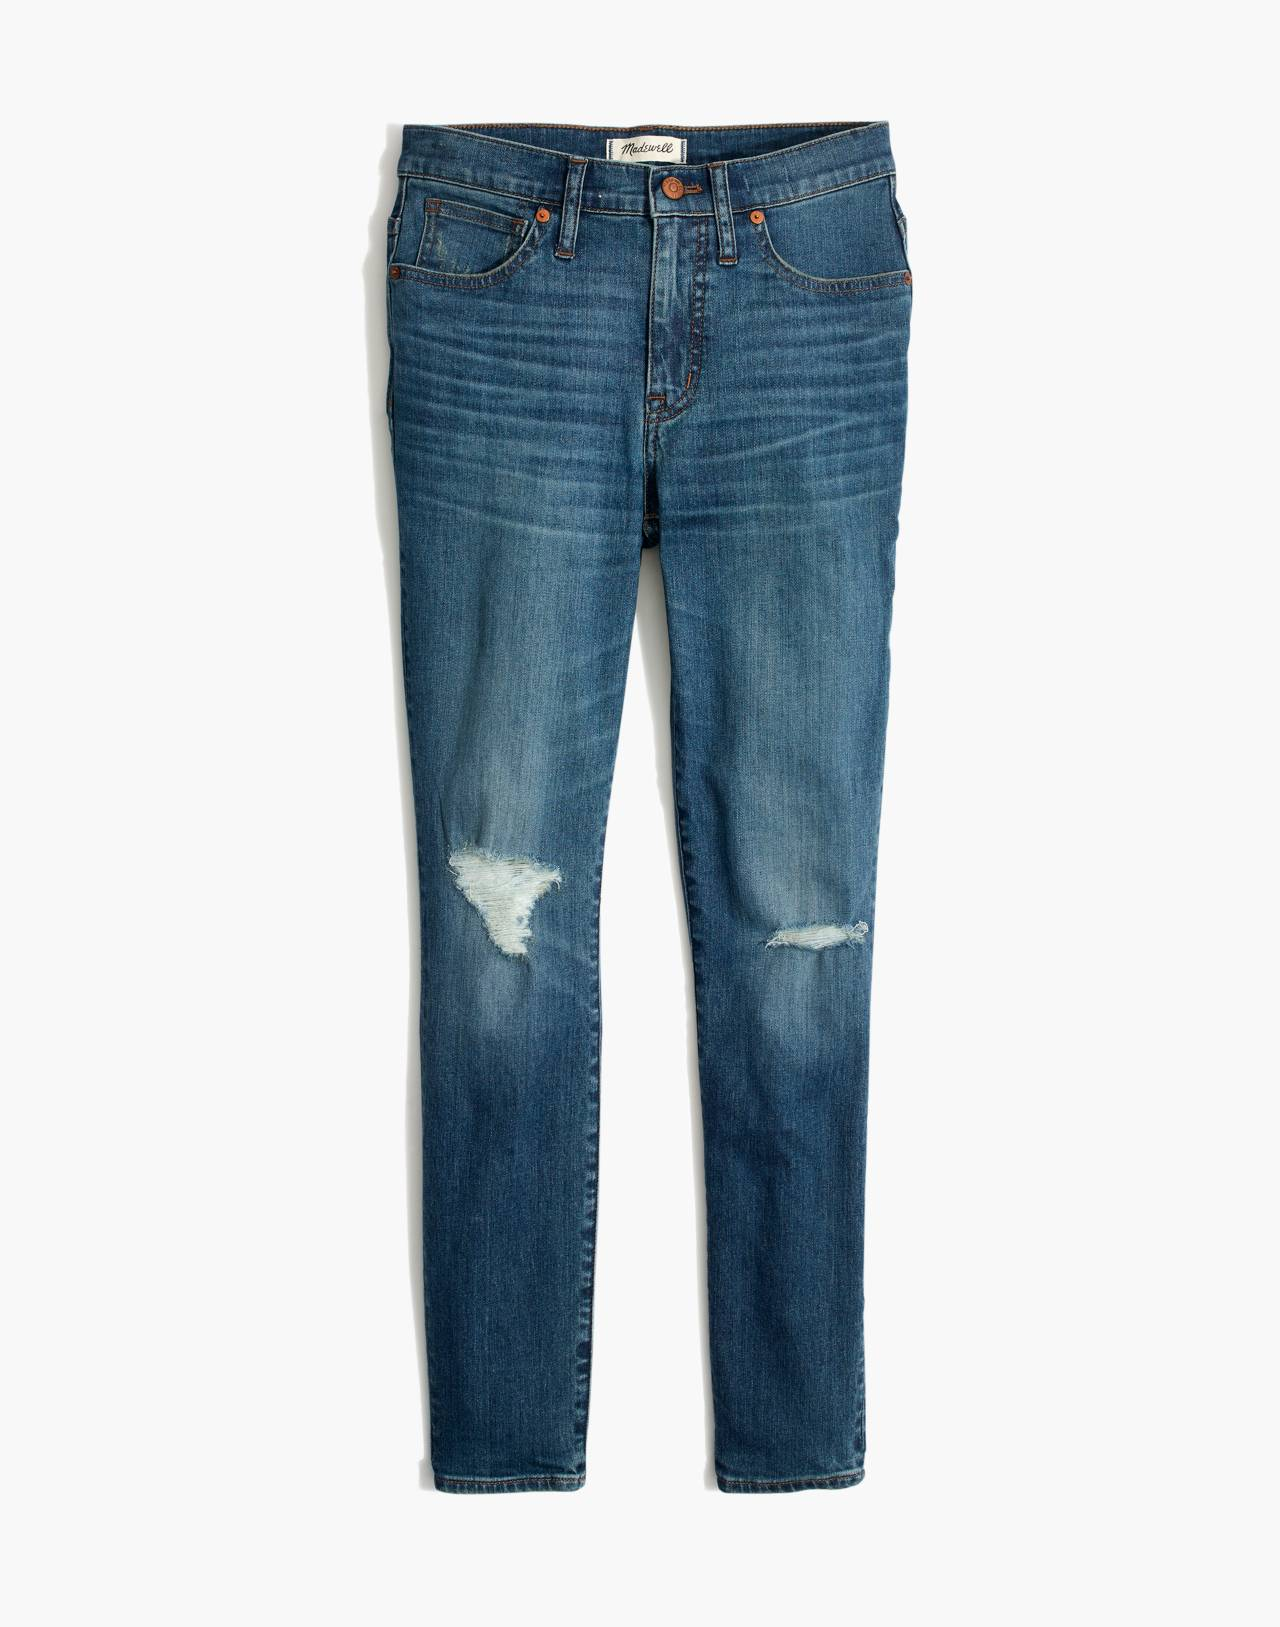 "9"" High-Rise Skinny Crop Jeans in Delmar Wash: Eco Edition in delmar wash image 4"